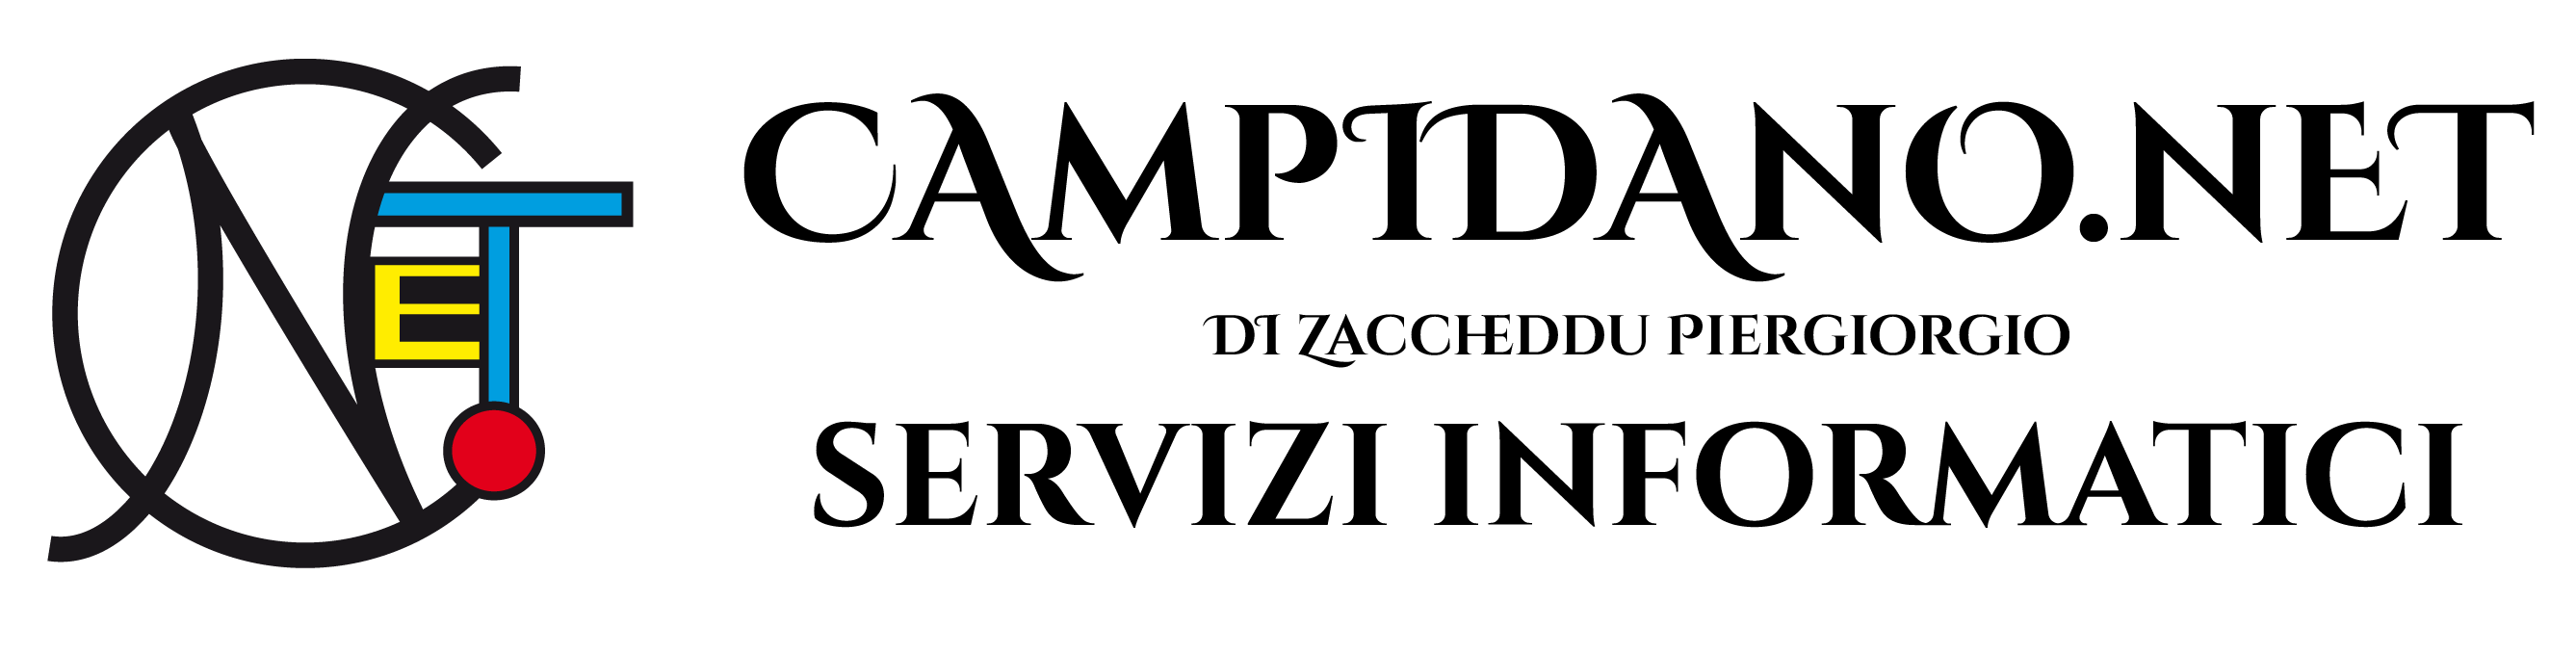 powered by CAMPIDANO.NET Servizi informatici